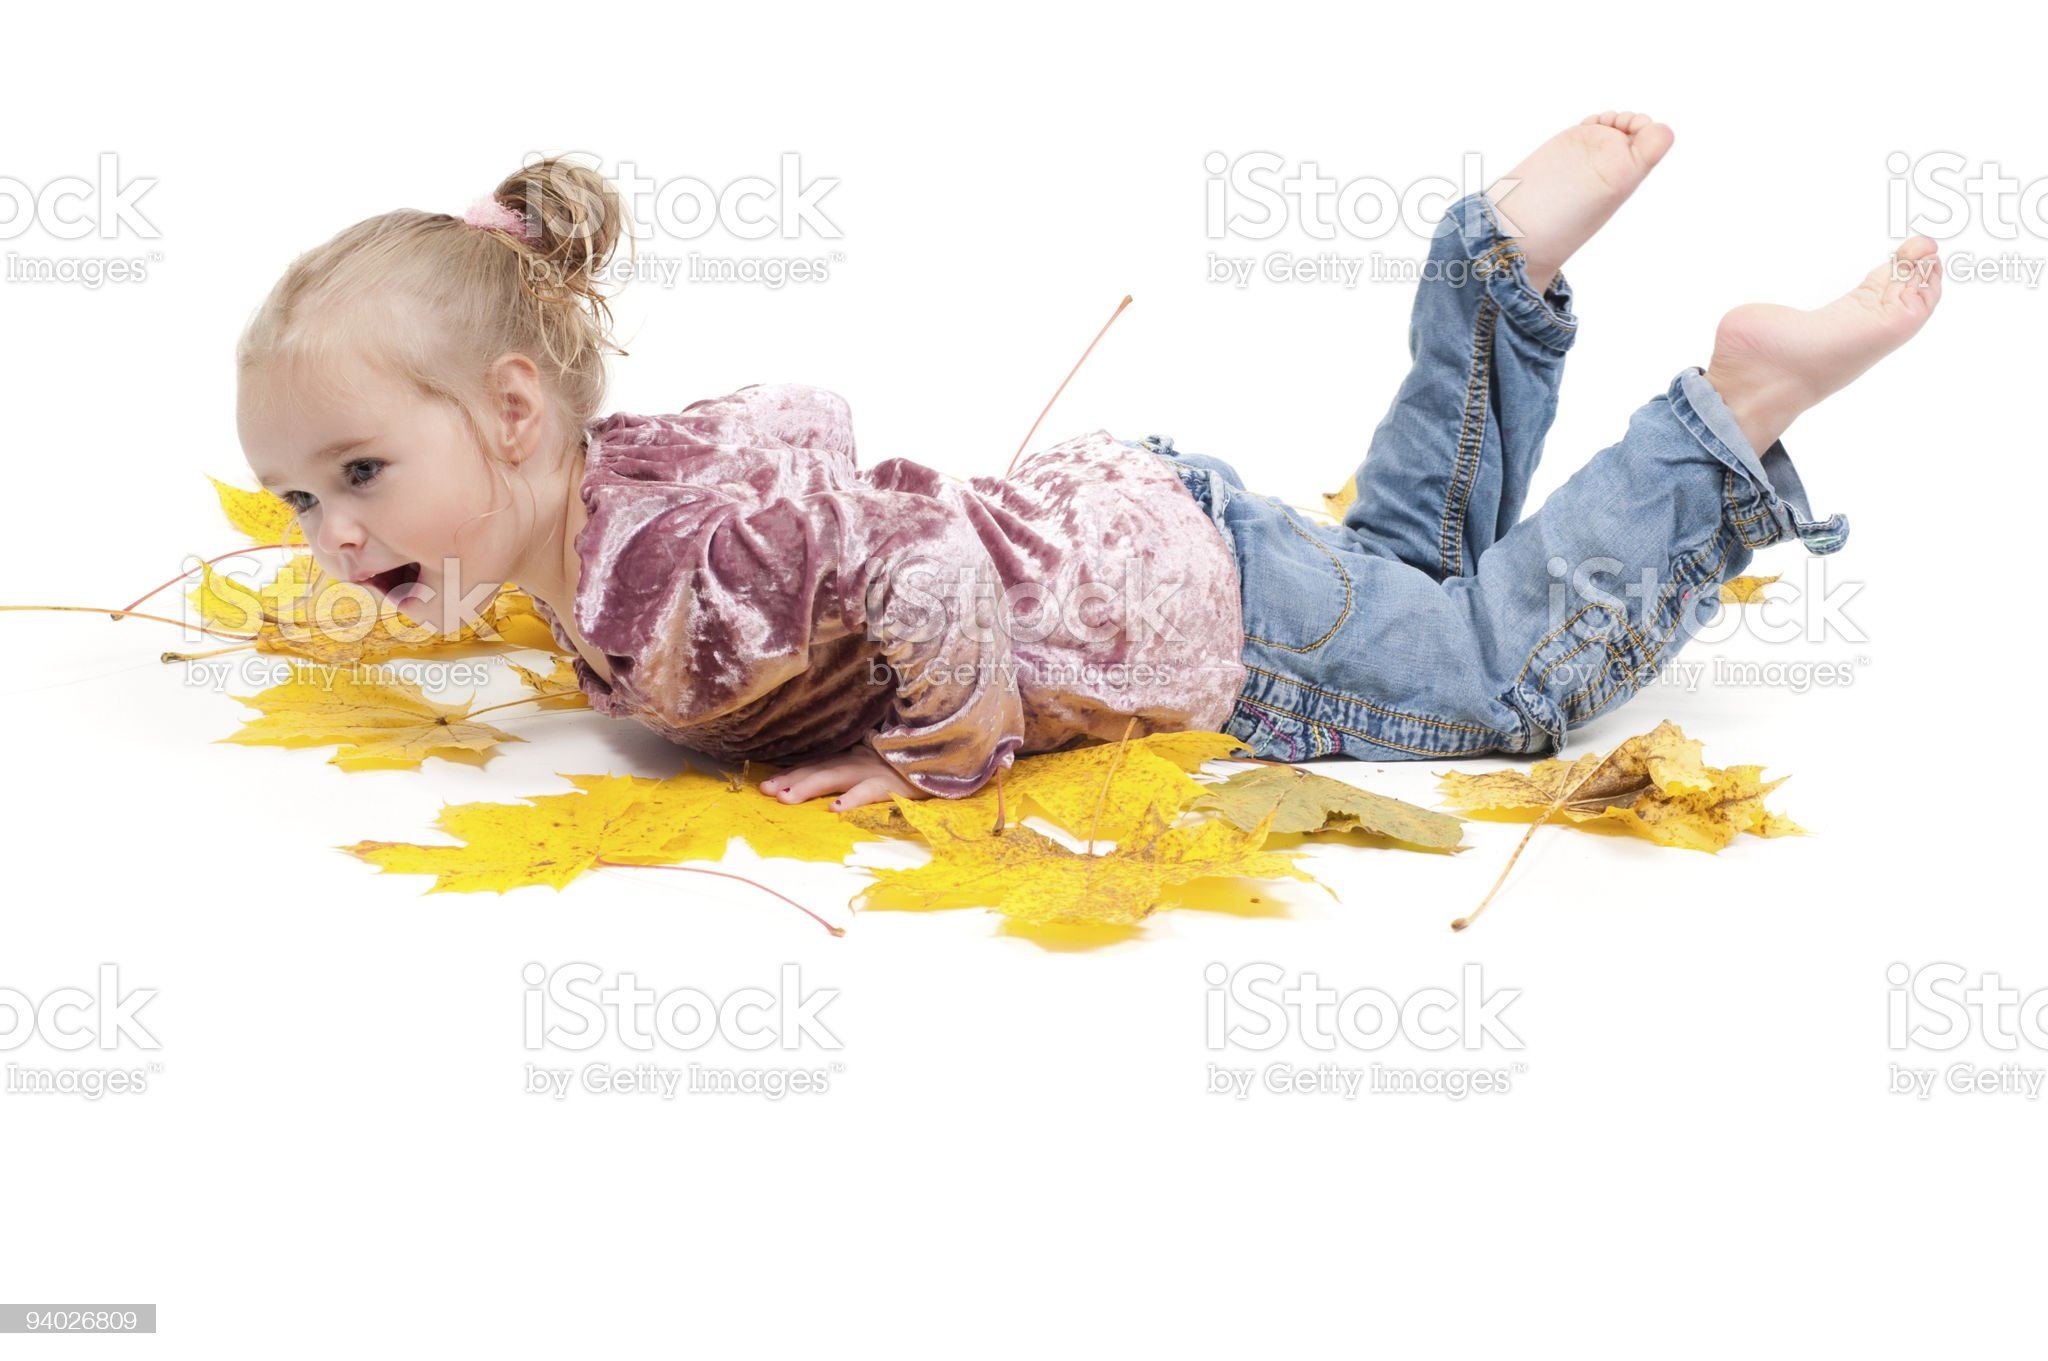 Toddler with maple leaves royalty-free stock photo